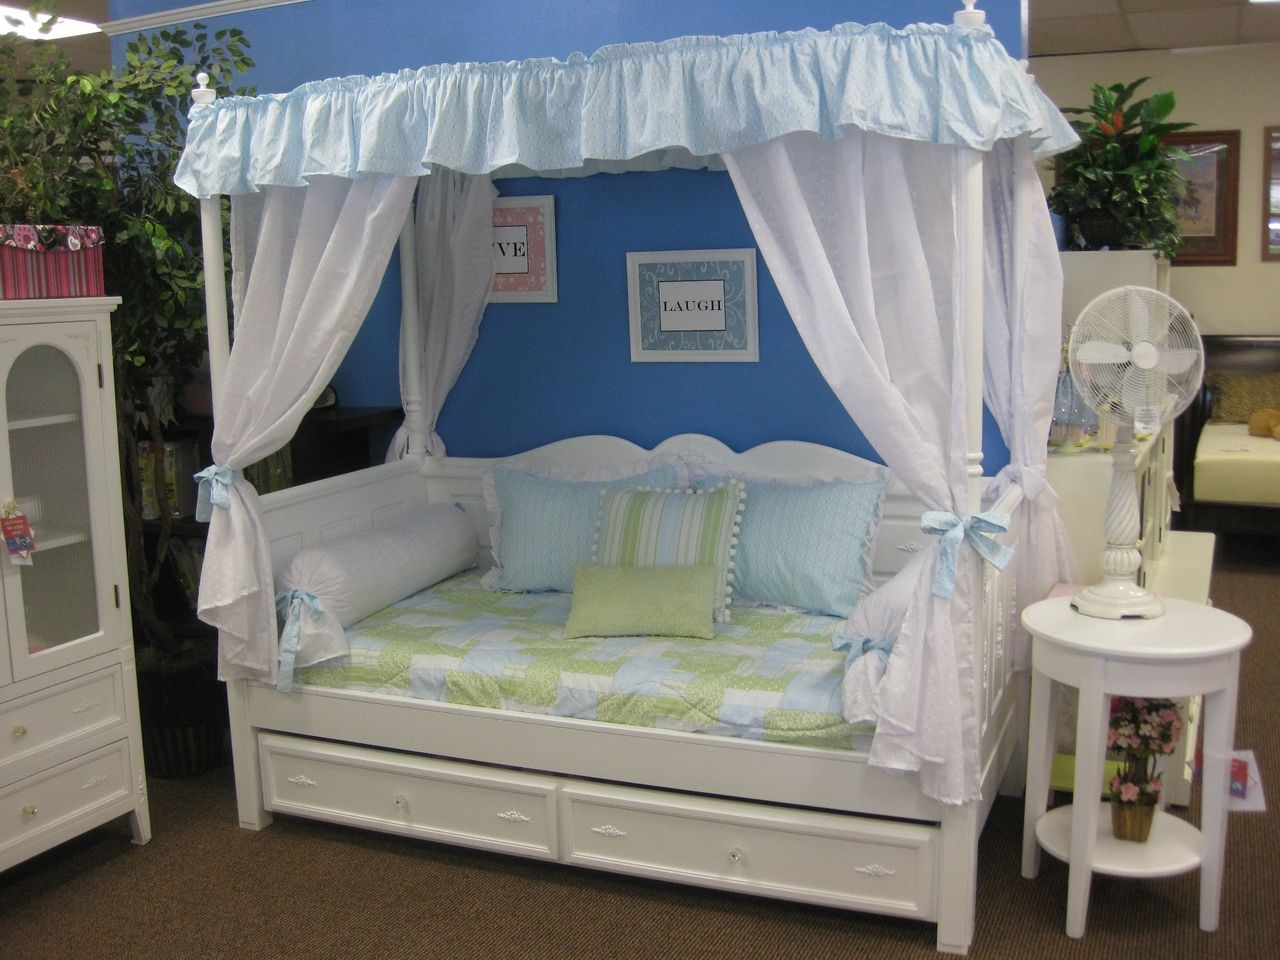 Madison Canopy Daybed is designed with soft scalloped edges and delicate floral appliqués. : canopy daybeds - memphite.com